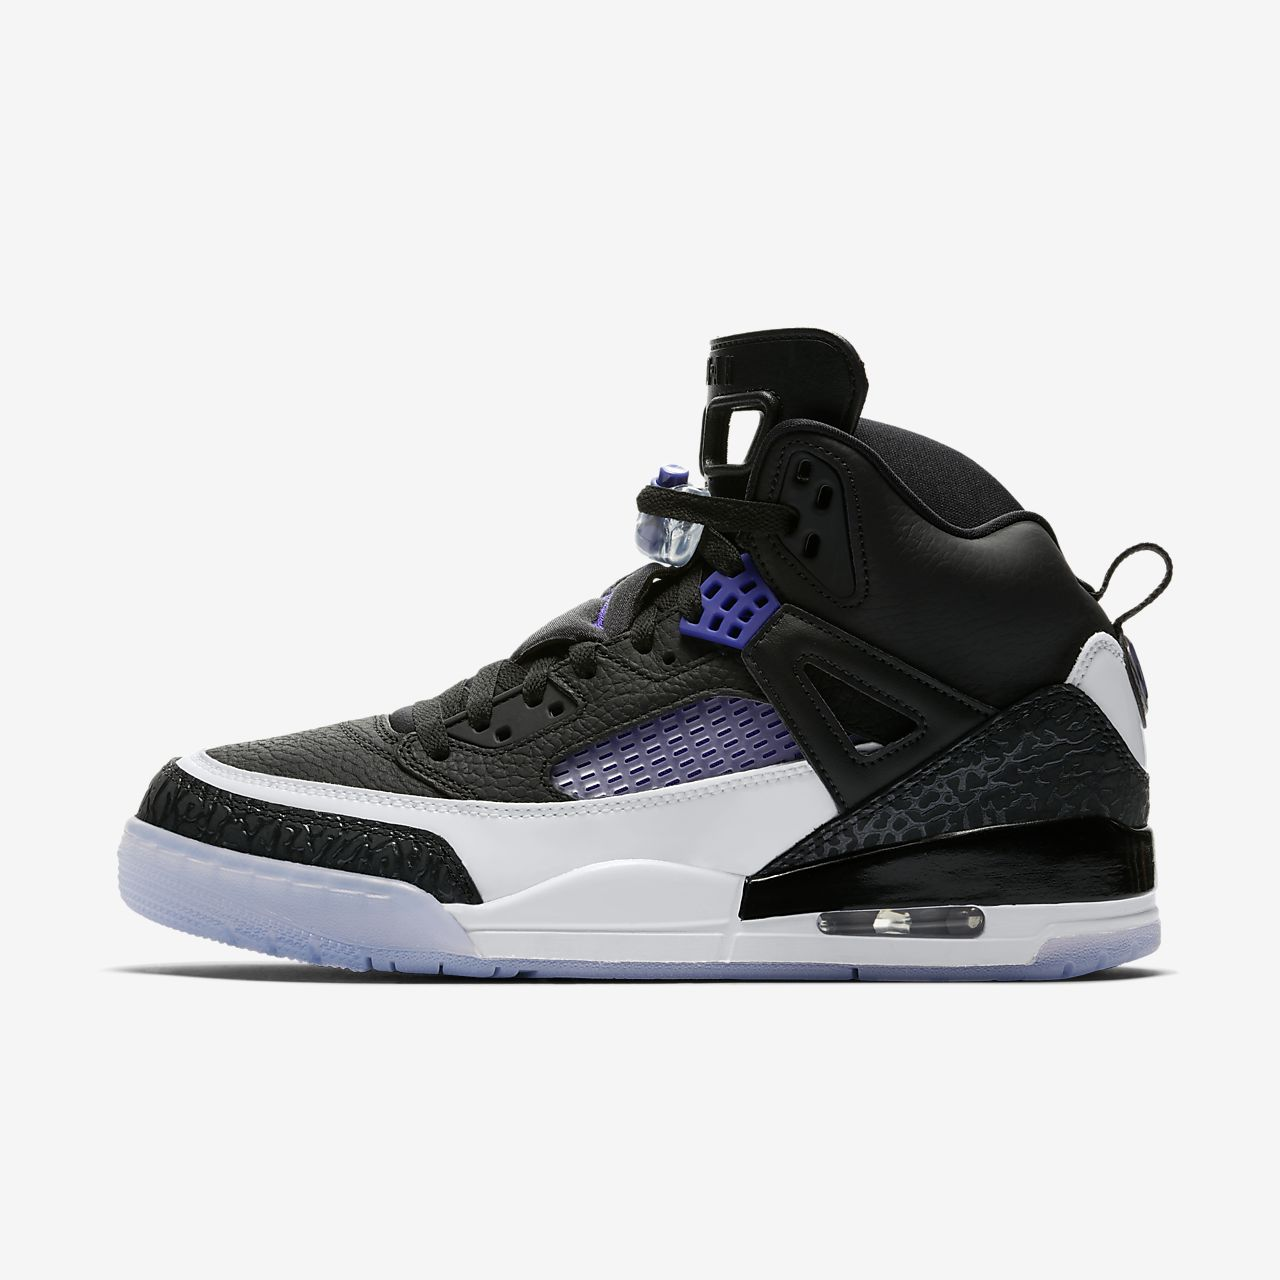 Low Resolution Jordan Spizike Men s Shoe Jordan Spizike Men s Shoe 3e7b4429e